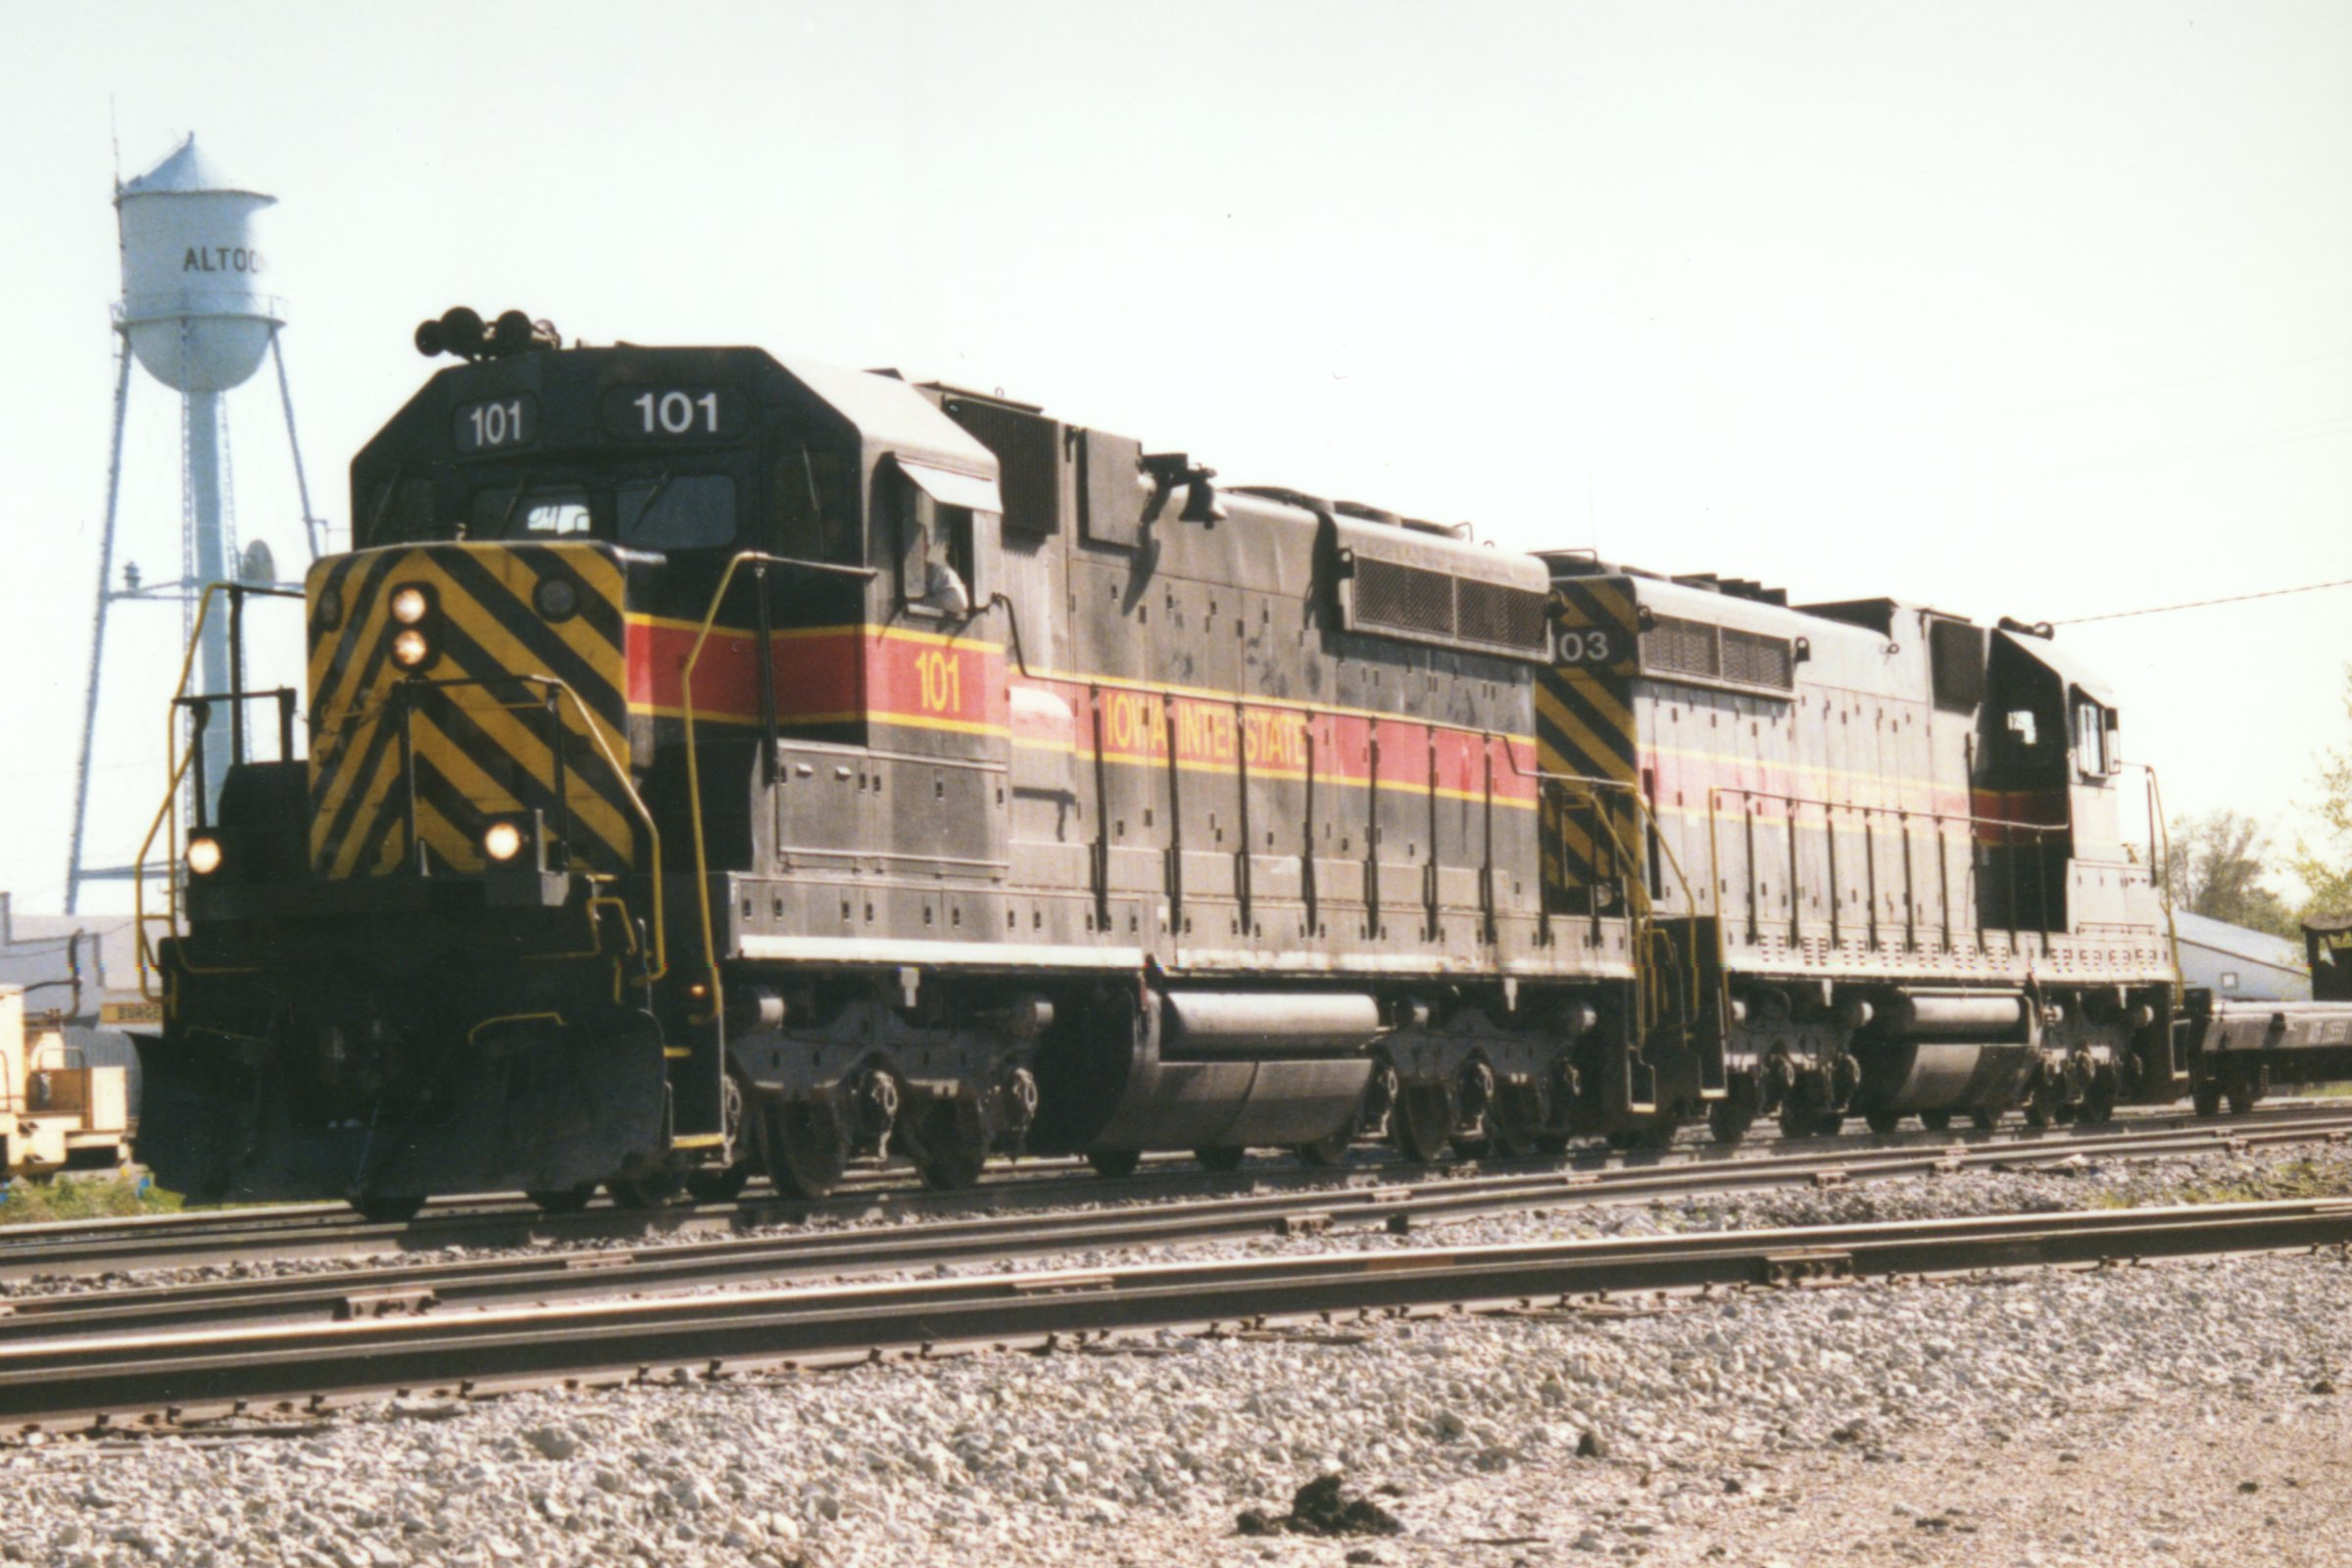 IAIS 101 at Altoona, IA on 15-May-1997